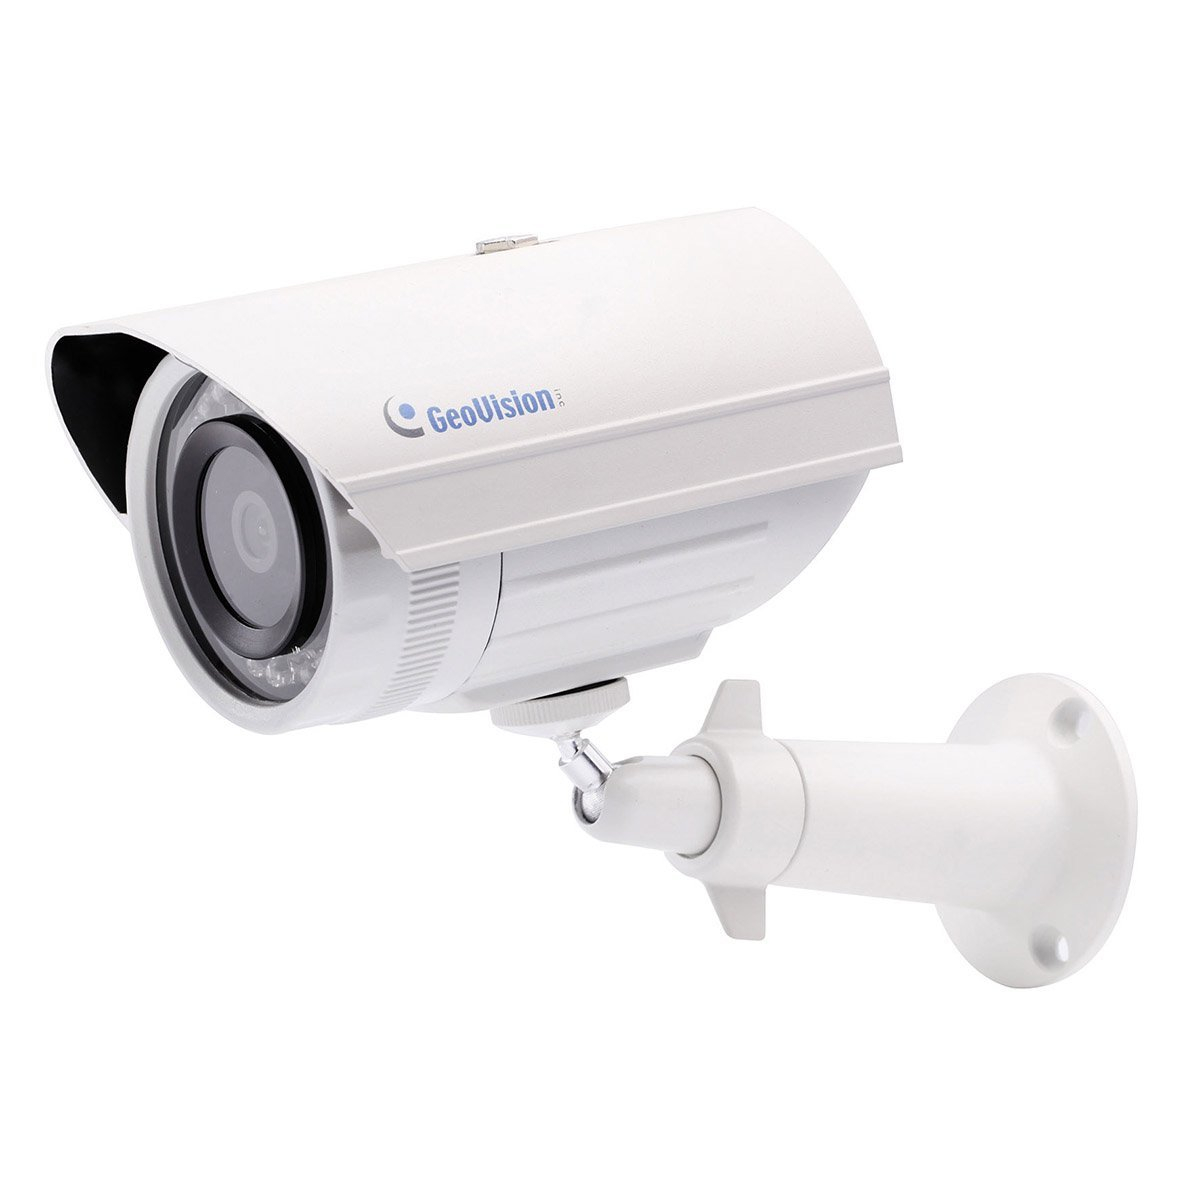 GeoVision HD Video Security